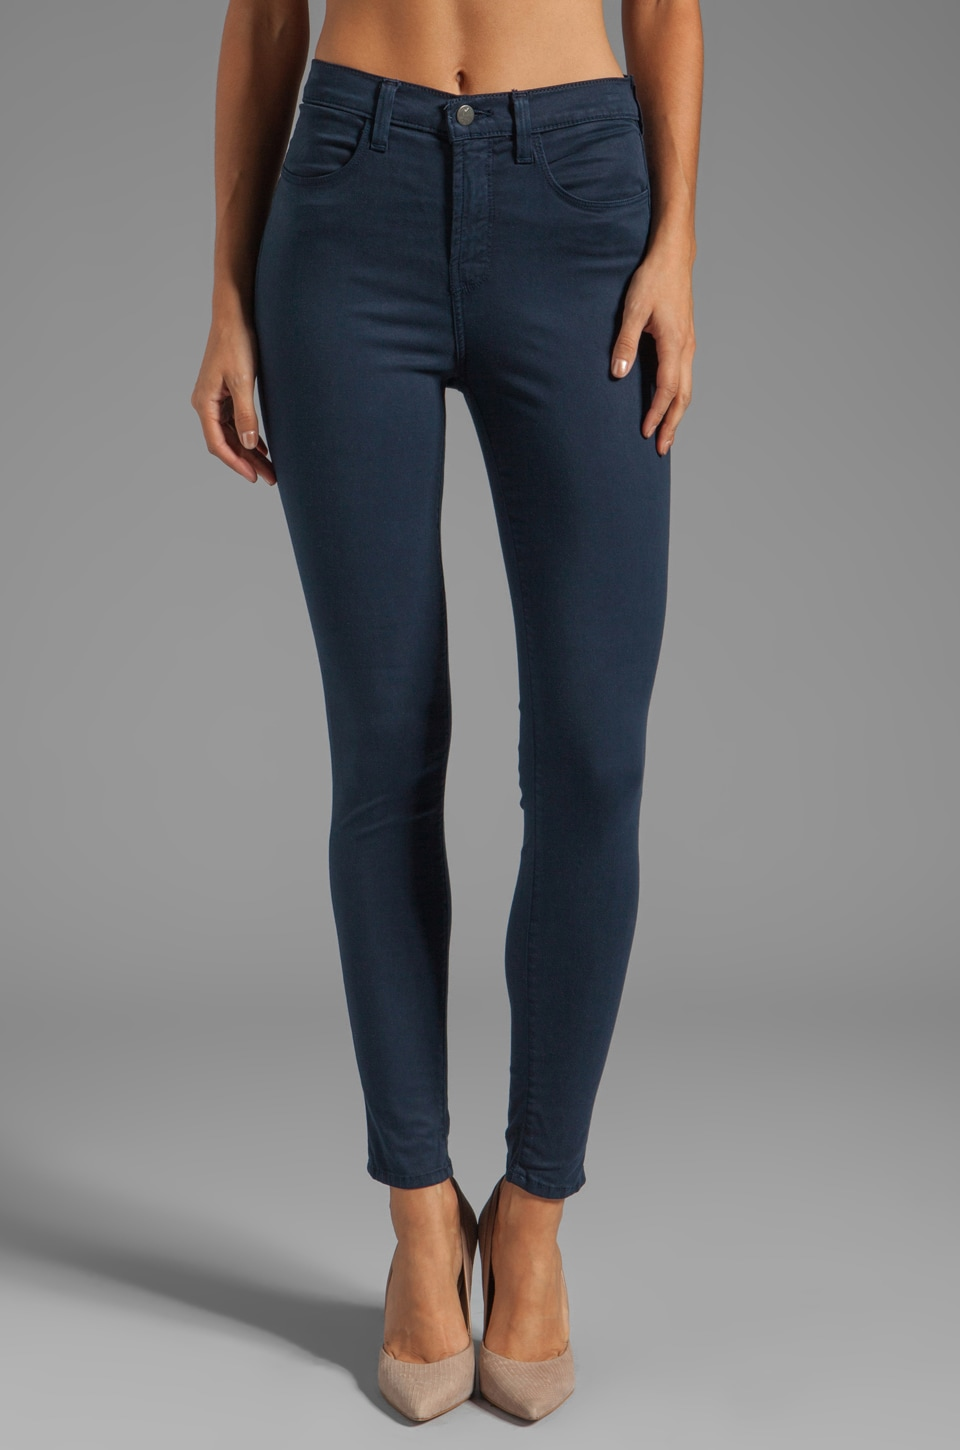 J Brand Marja Highrise Skinny in Carbon Blue